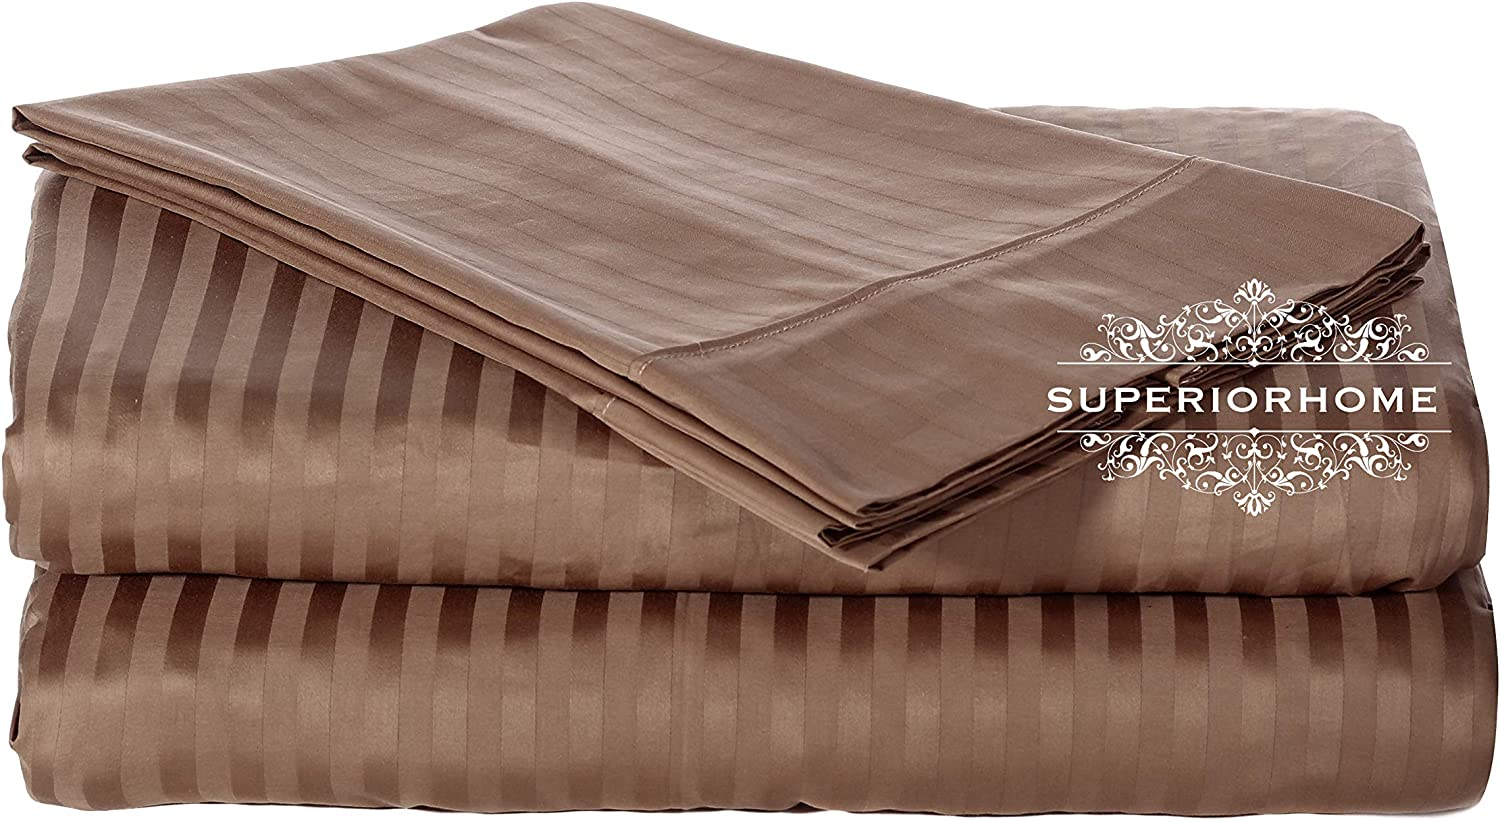 Luxurious 300 Thread Count California King Size Sheet Set,100% Egyptian Cotton Long Staple Yarns, Sateen Weave, 4pc Set  Fitted Flat 2 Pillow Cases, Deep Pocket up to 18 , 300TC Cal-King Stripe Taupe